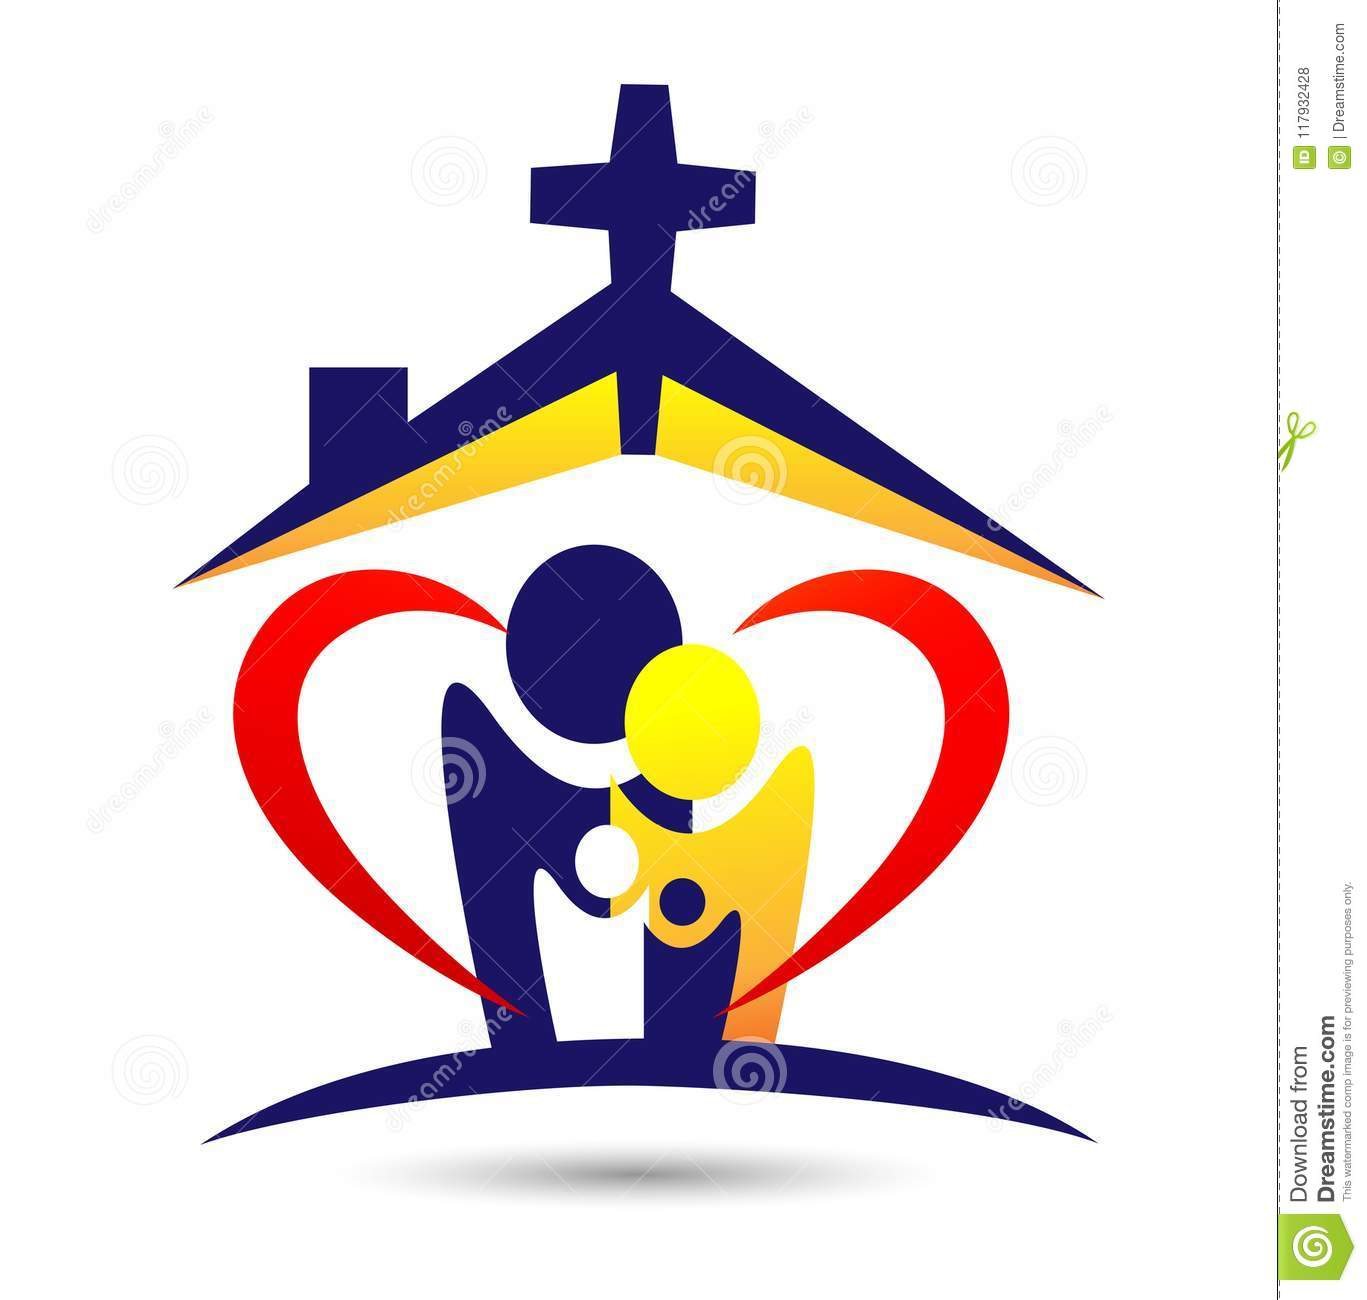 Family church logo,home love, happy, care of church logo on white background